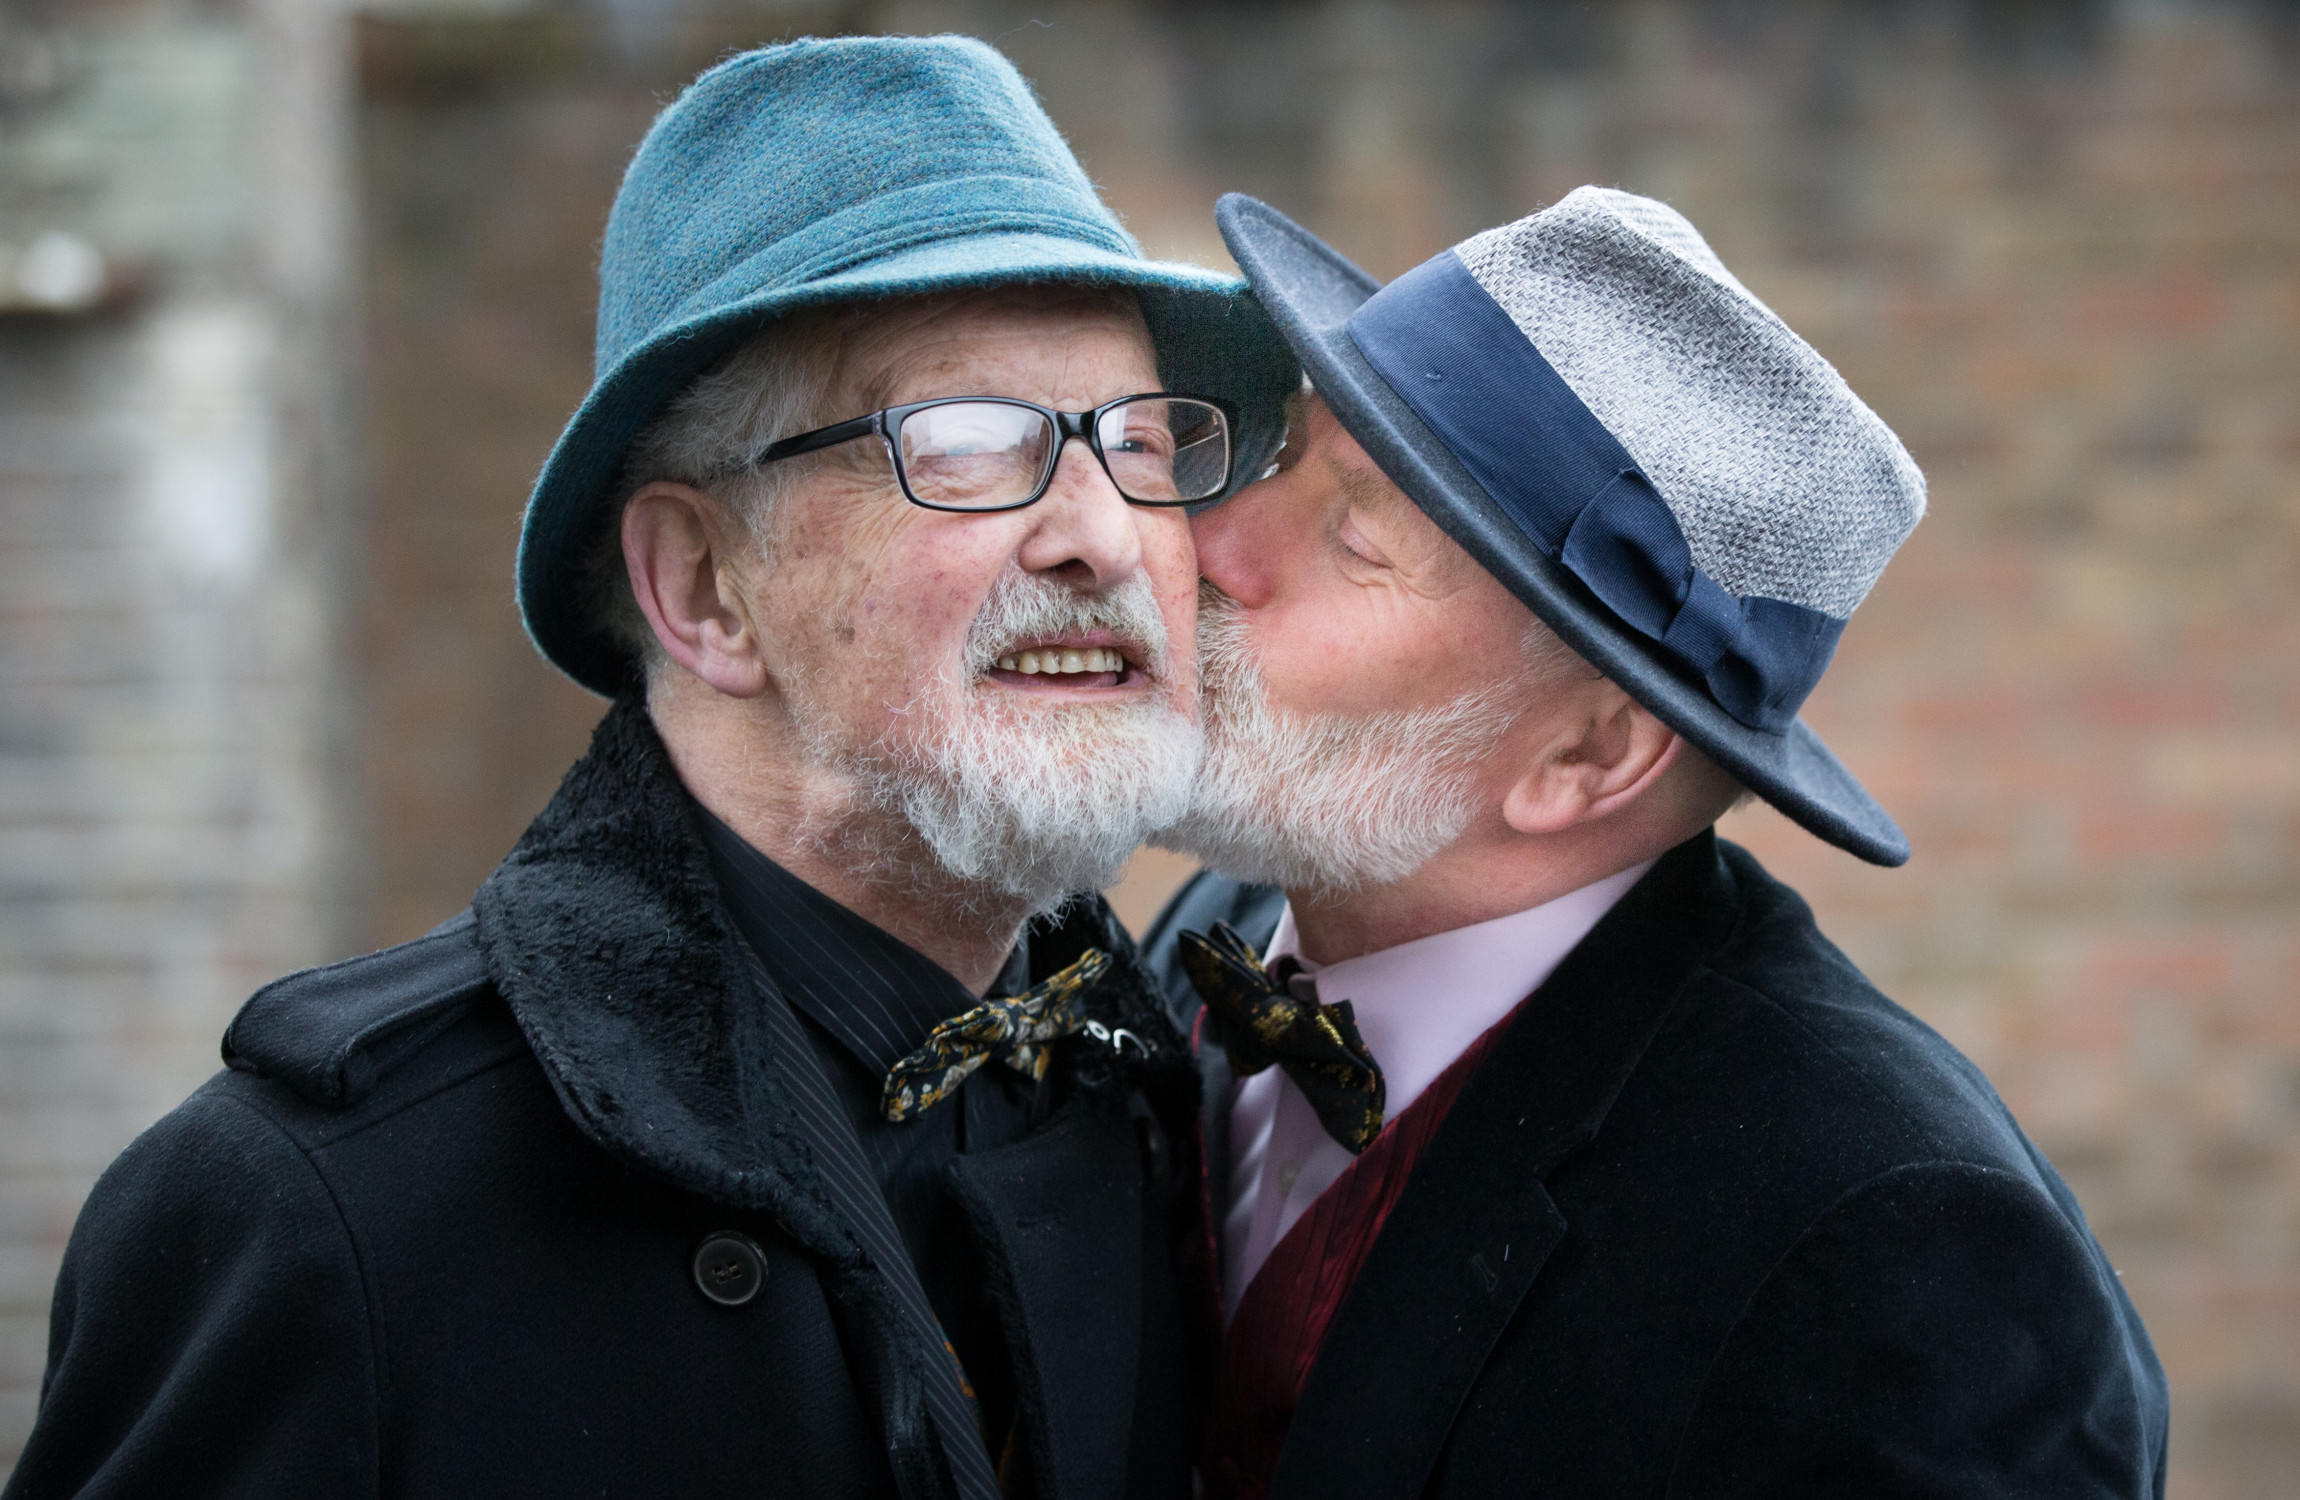 Two Straight Guys Got Married to One Another to Avoid Inheritance Tax